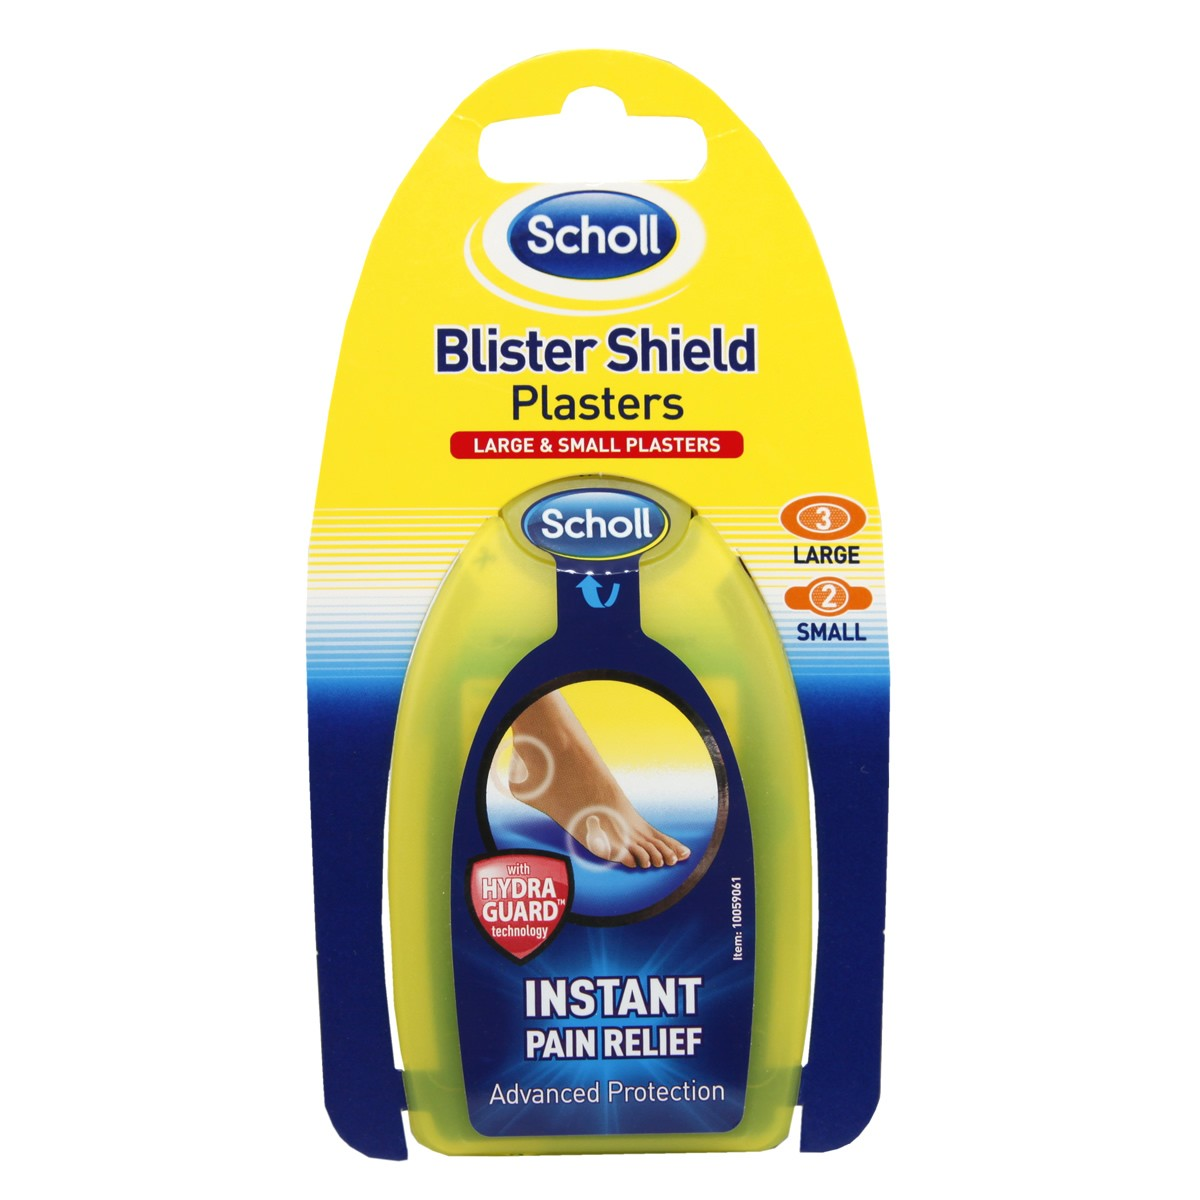 Scholl Blister Shield Plasters - Large & Small Plasters